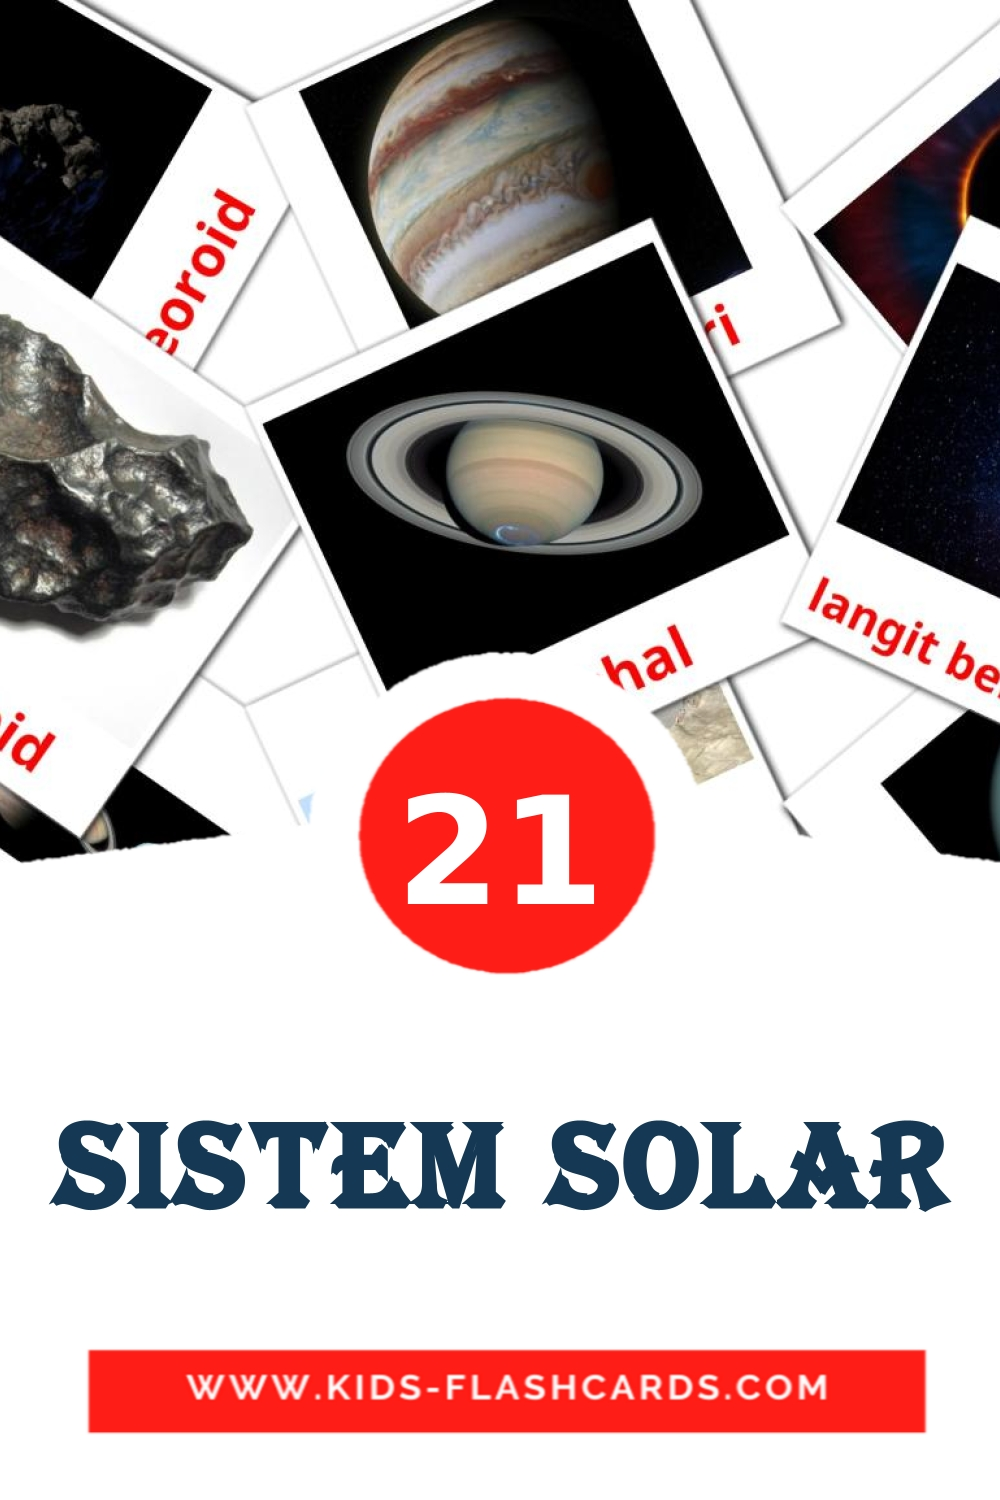 20 Sistem solar Picture Cards for Kindergarden in malay